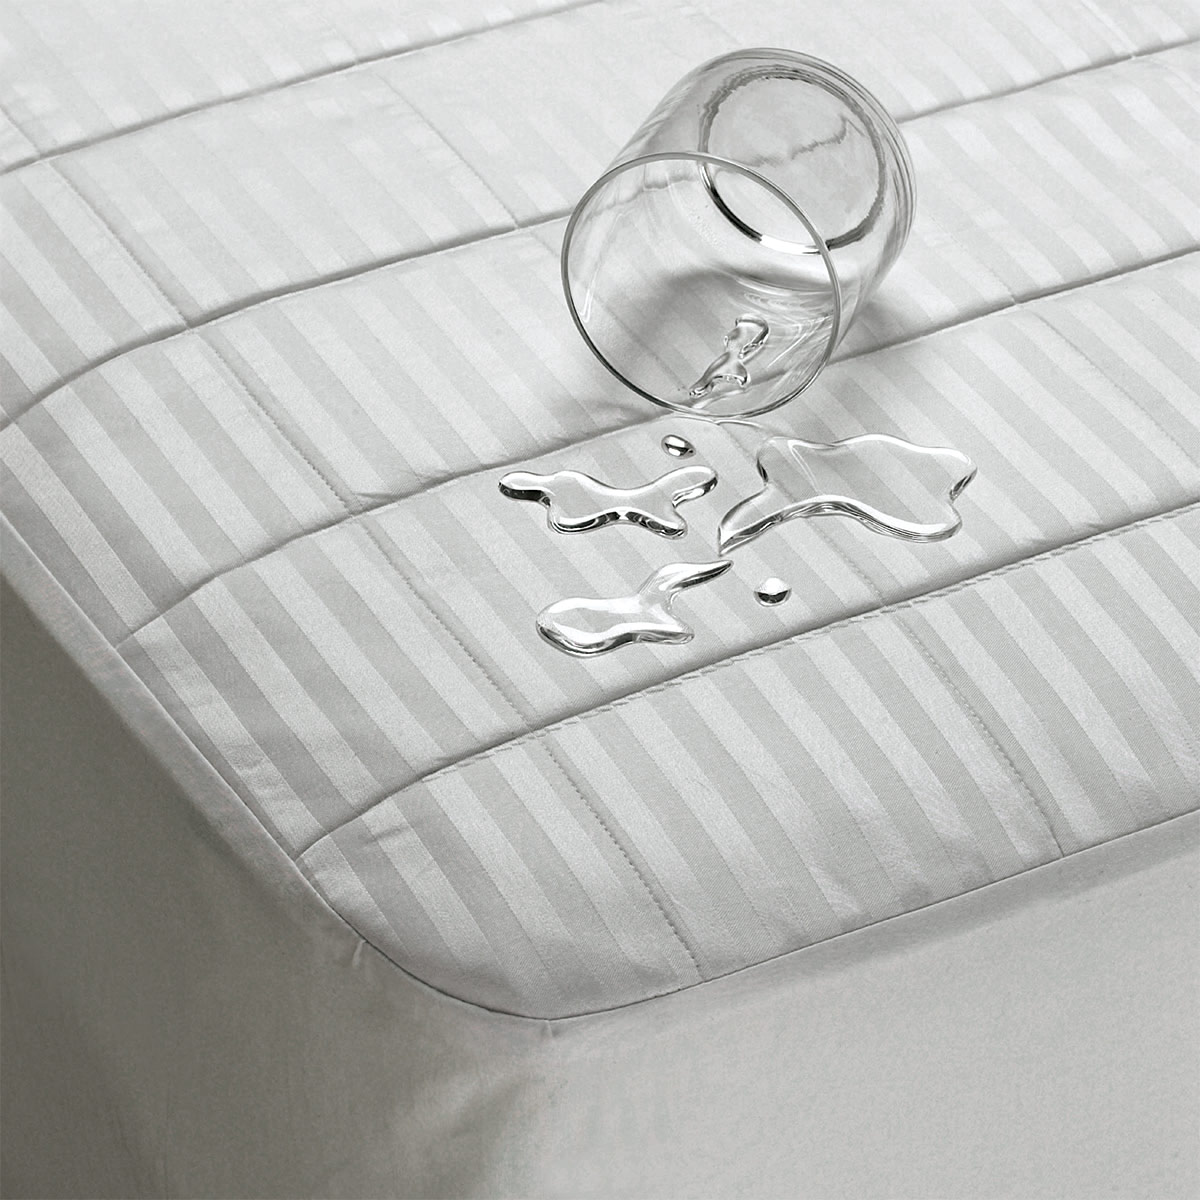 Waterproof & Washable Mattress Pad. Waterproof_MatPad1.jpg